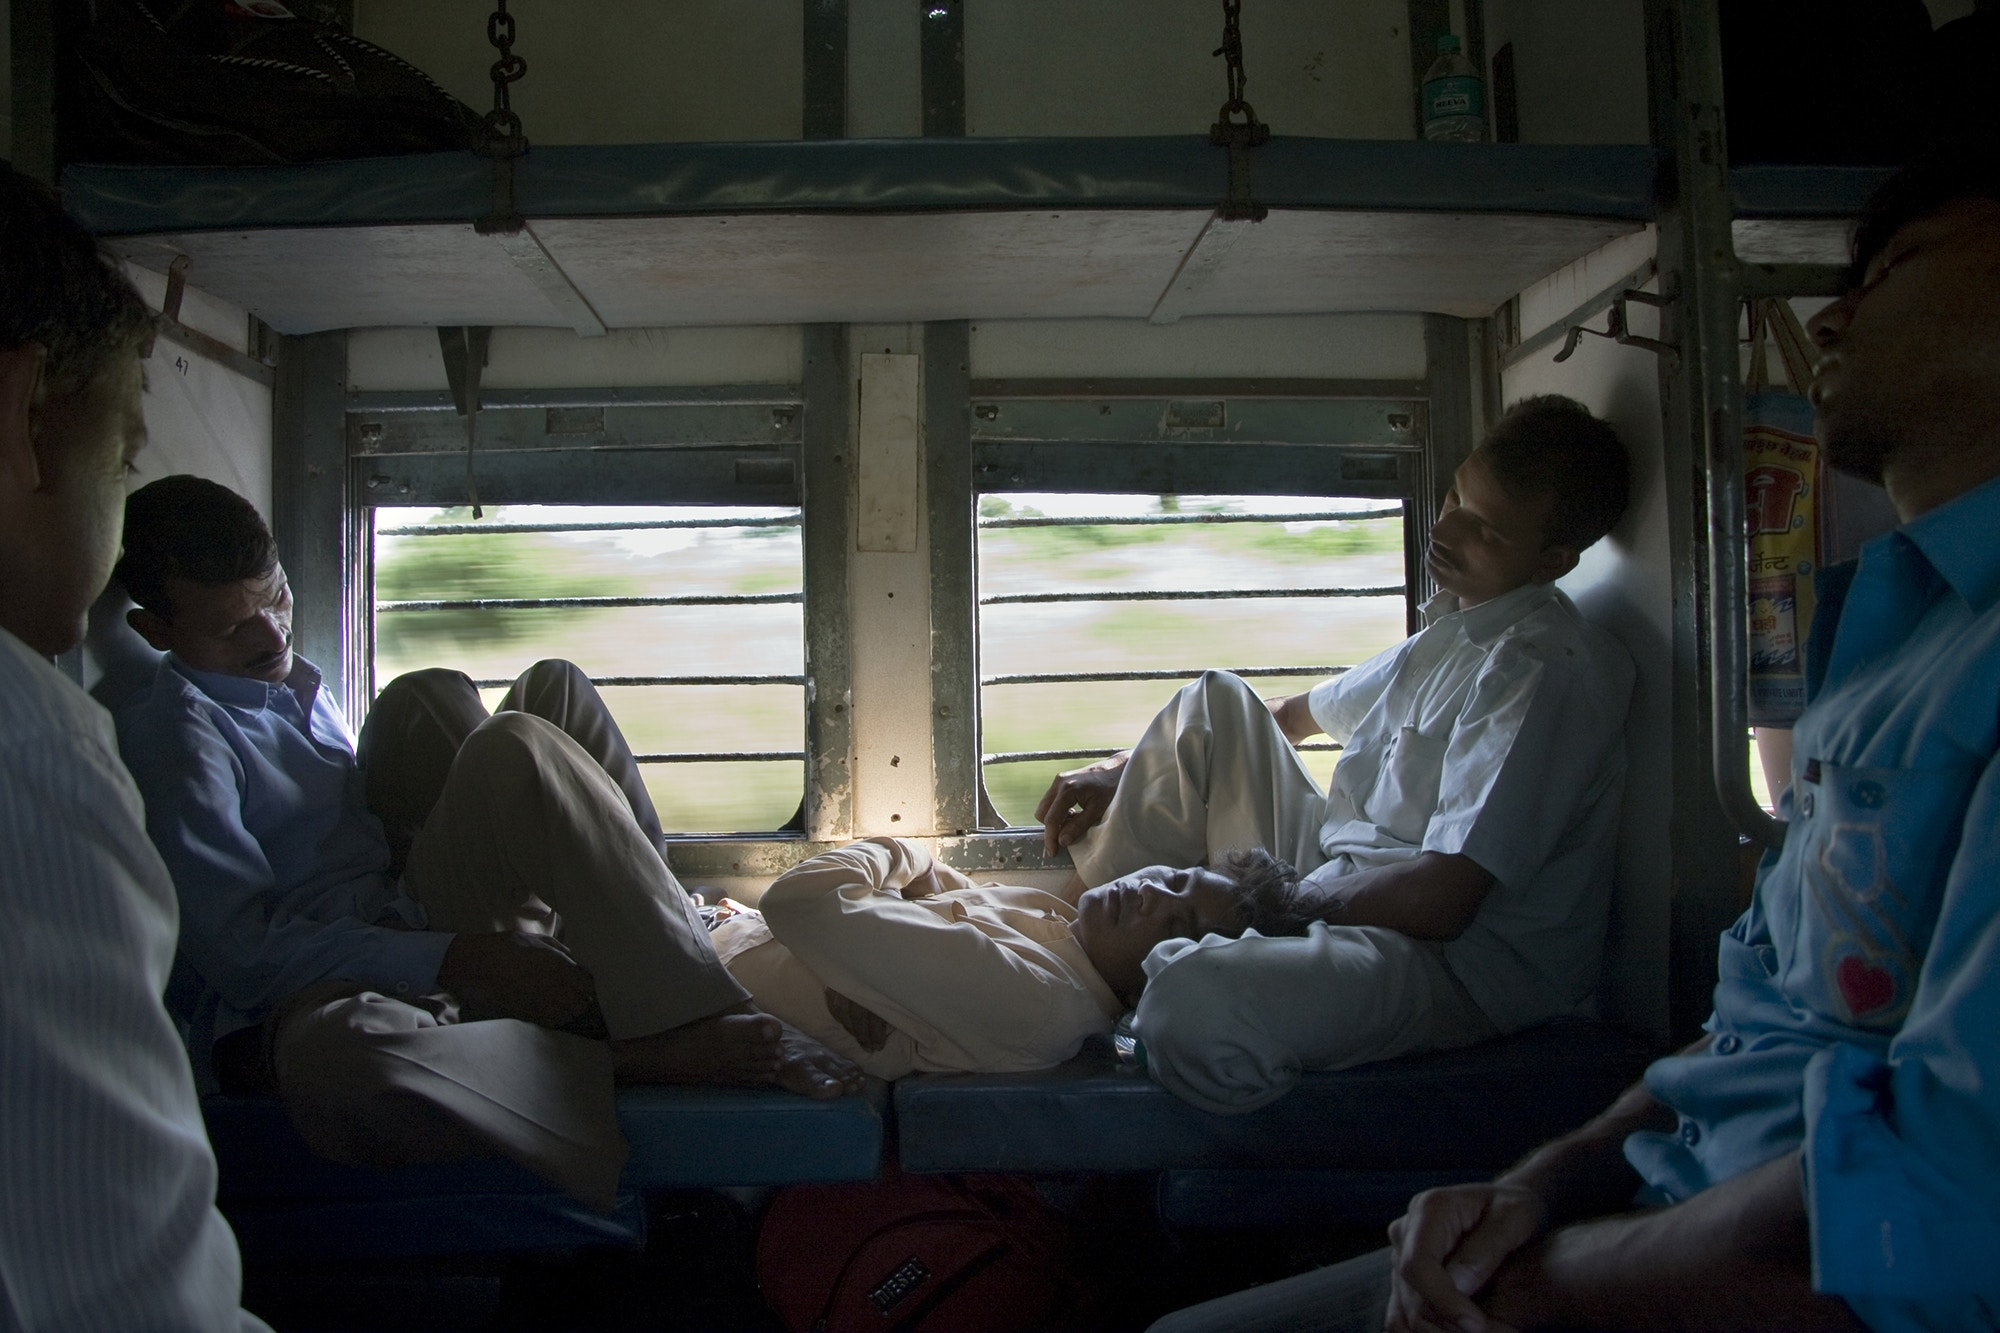 Passengers inside the carriage of a moving train, India